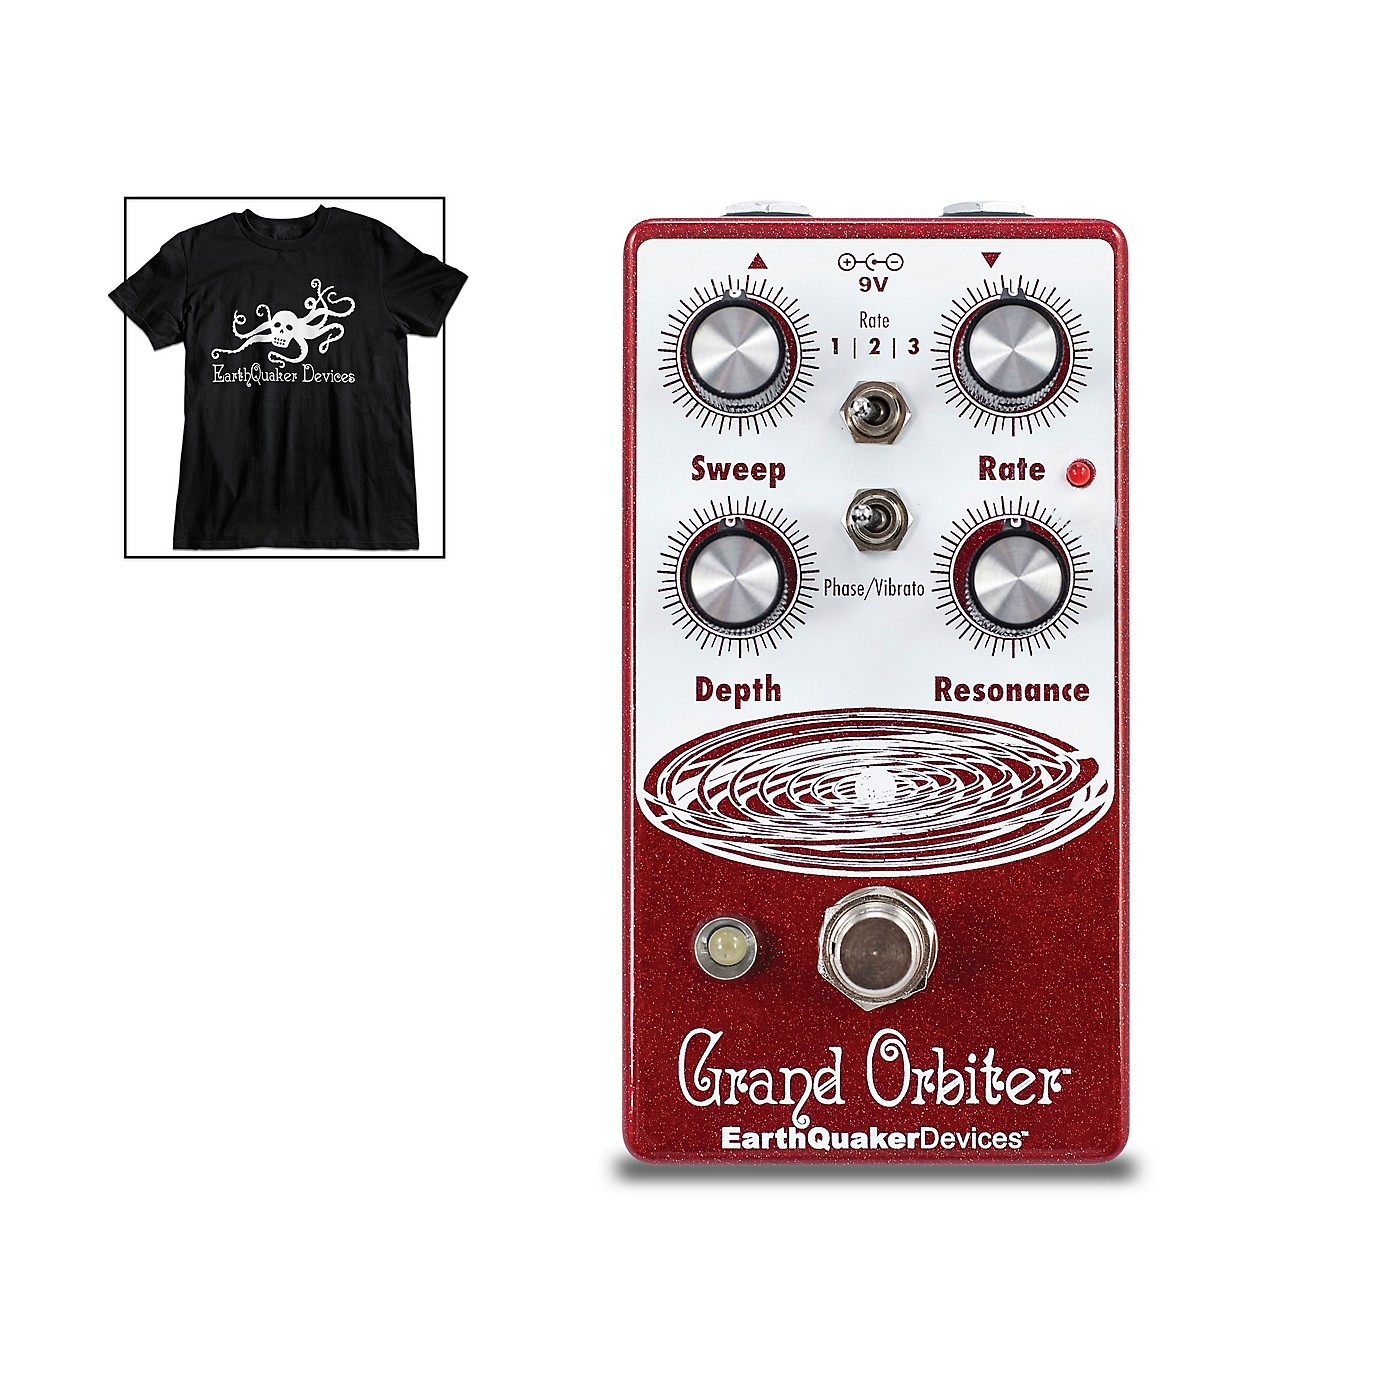 Earthquaker Devices Grand Orbiter V3 Phase Effects Pedal and Octoskull T-Shirt Large Black thumbnail